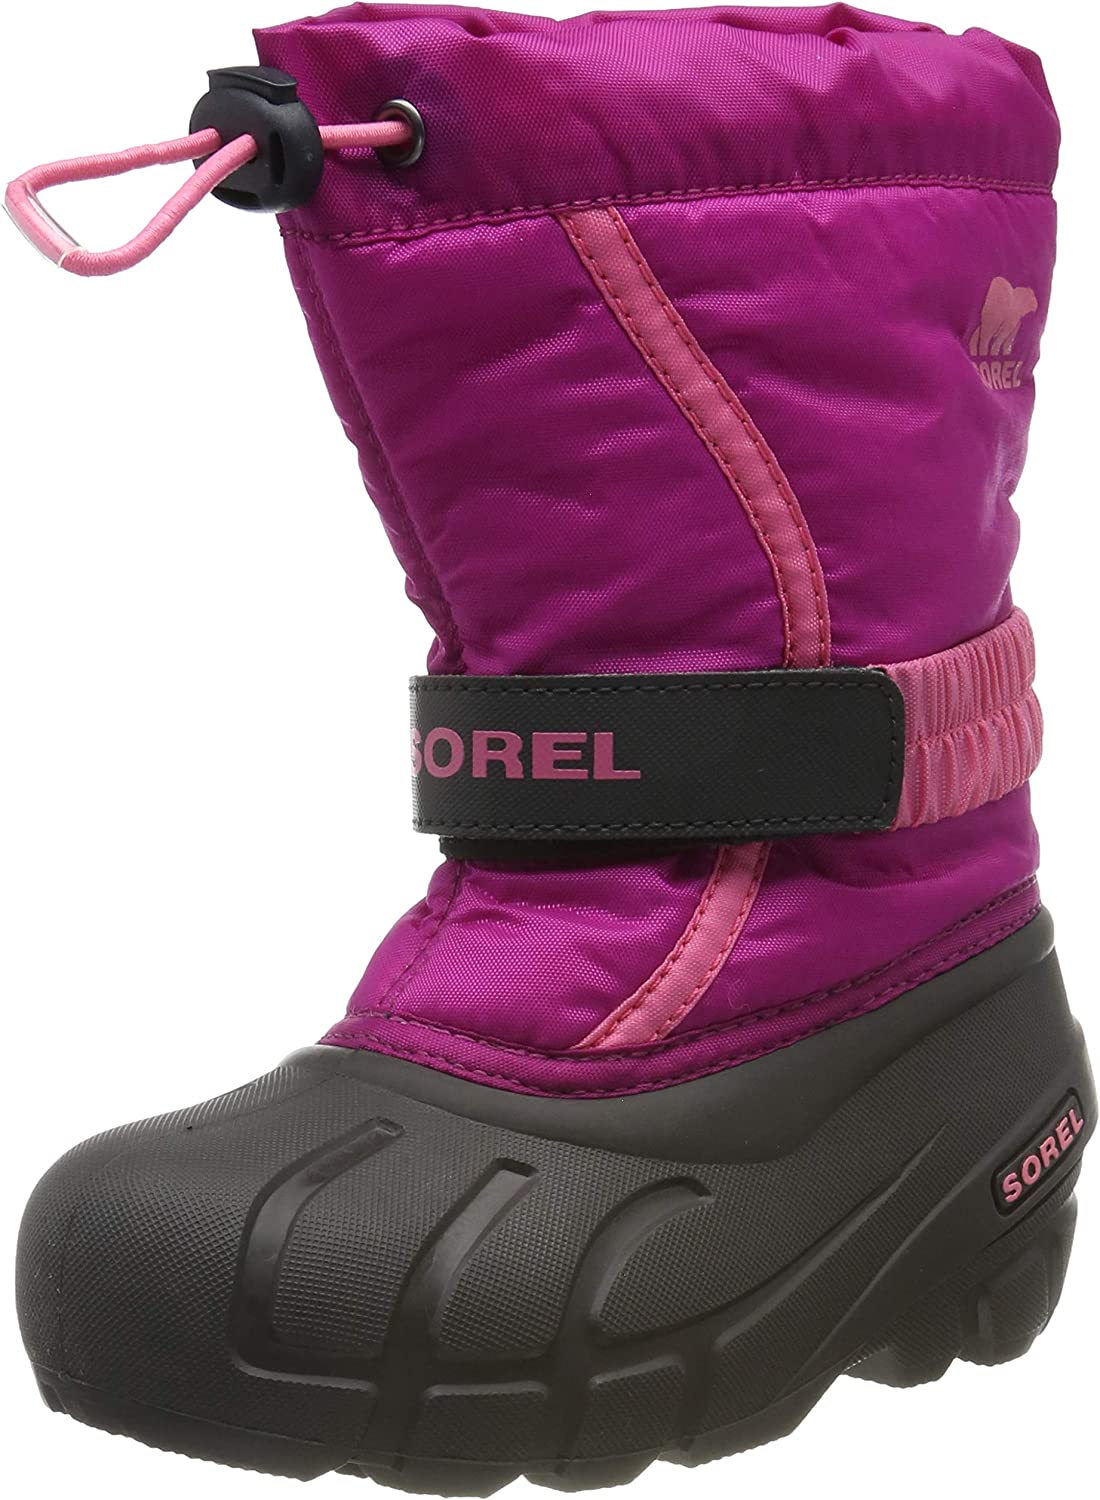 SOREL - Youth Flurry Winter Snow Boots for Kids